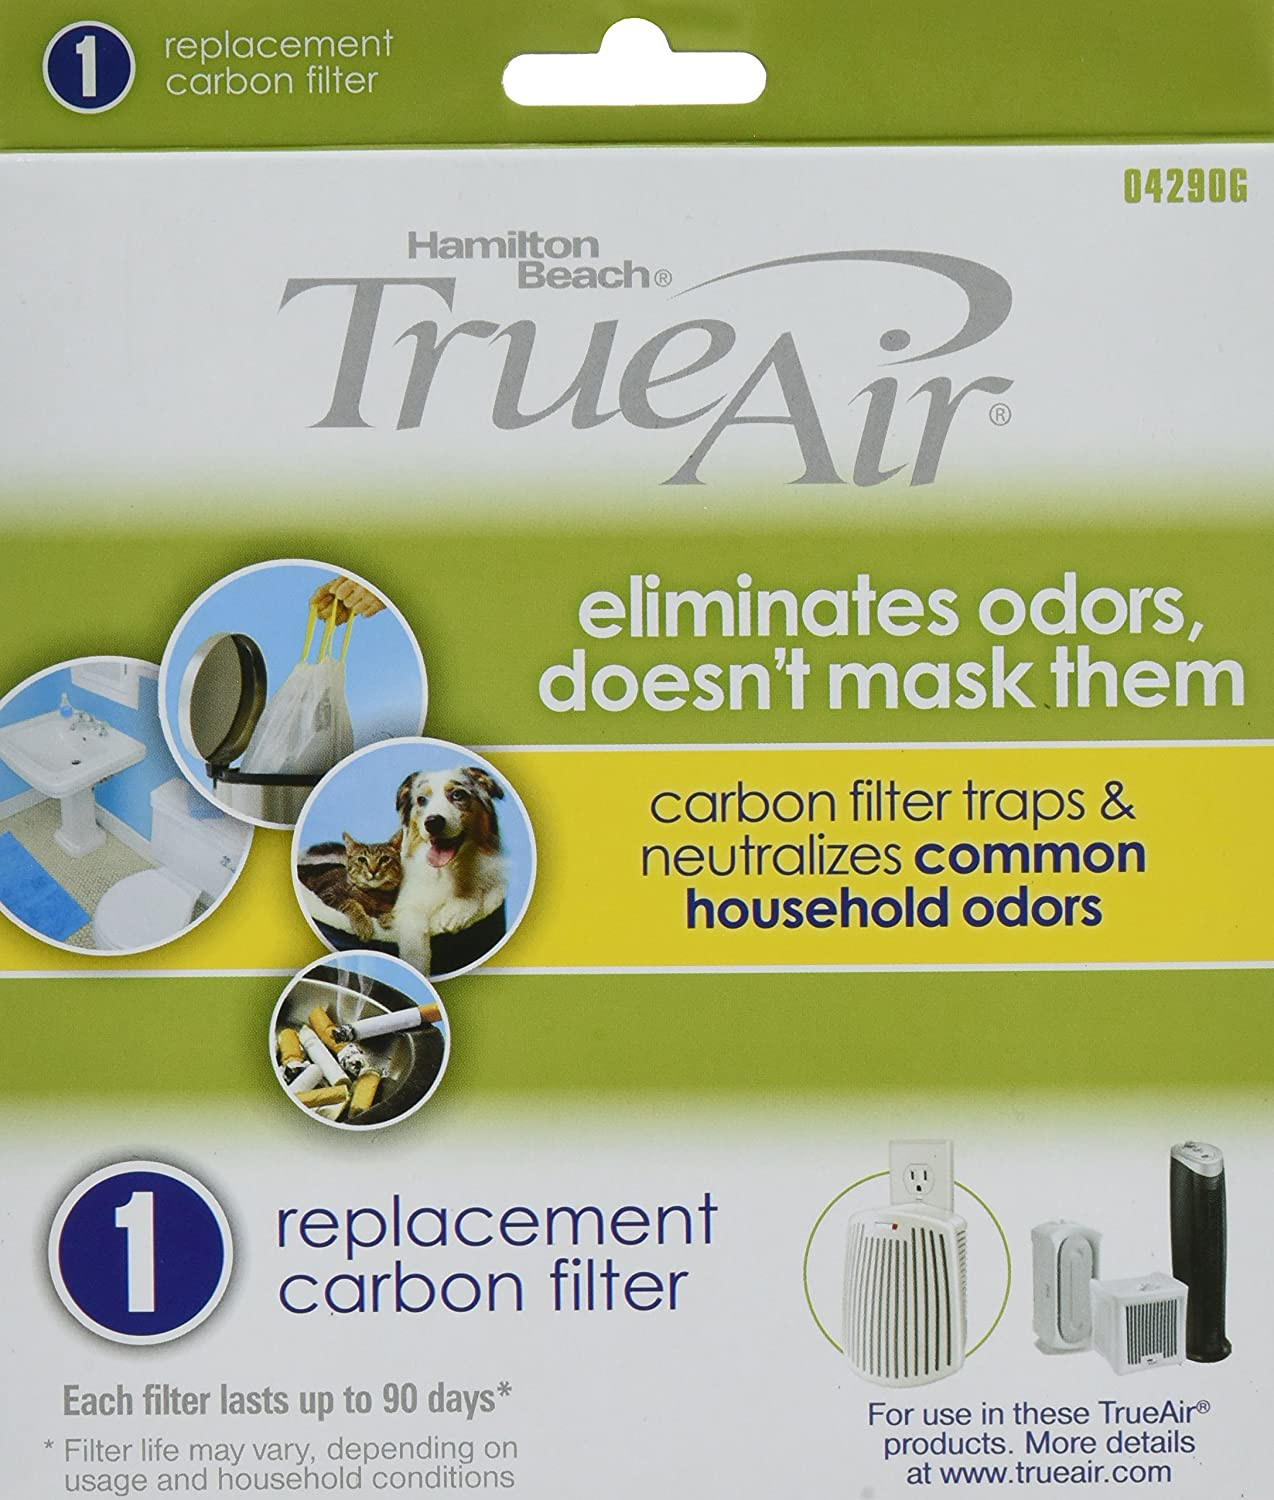 Amazon.com: Hamilton Beach Replacement Carbon Filter. Works with TrueAir  04384, 04386, 04532, 04532GM, & 04530 (04290G): Home & Kitchen